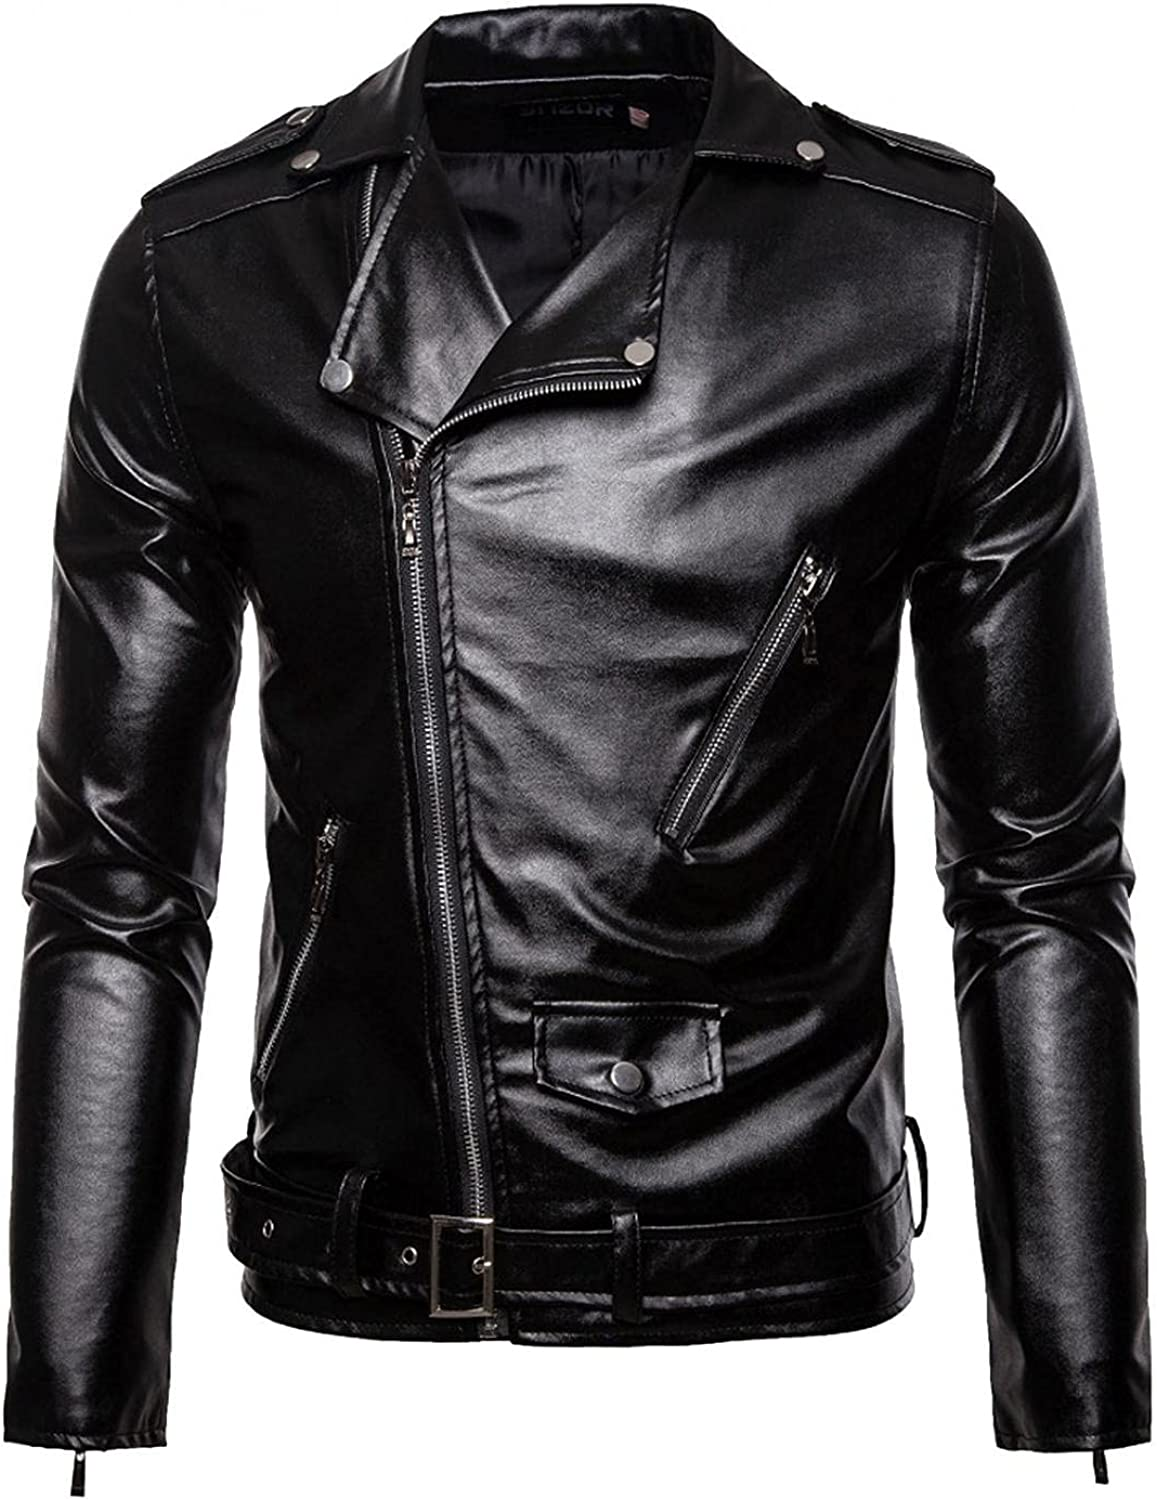 LEIYAN Mens Leather Jackets Casual Winter Long Sleeve Lapel Zip Up Bodybuilding Fitness Motorcycle Jackets